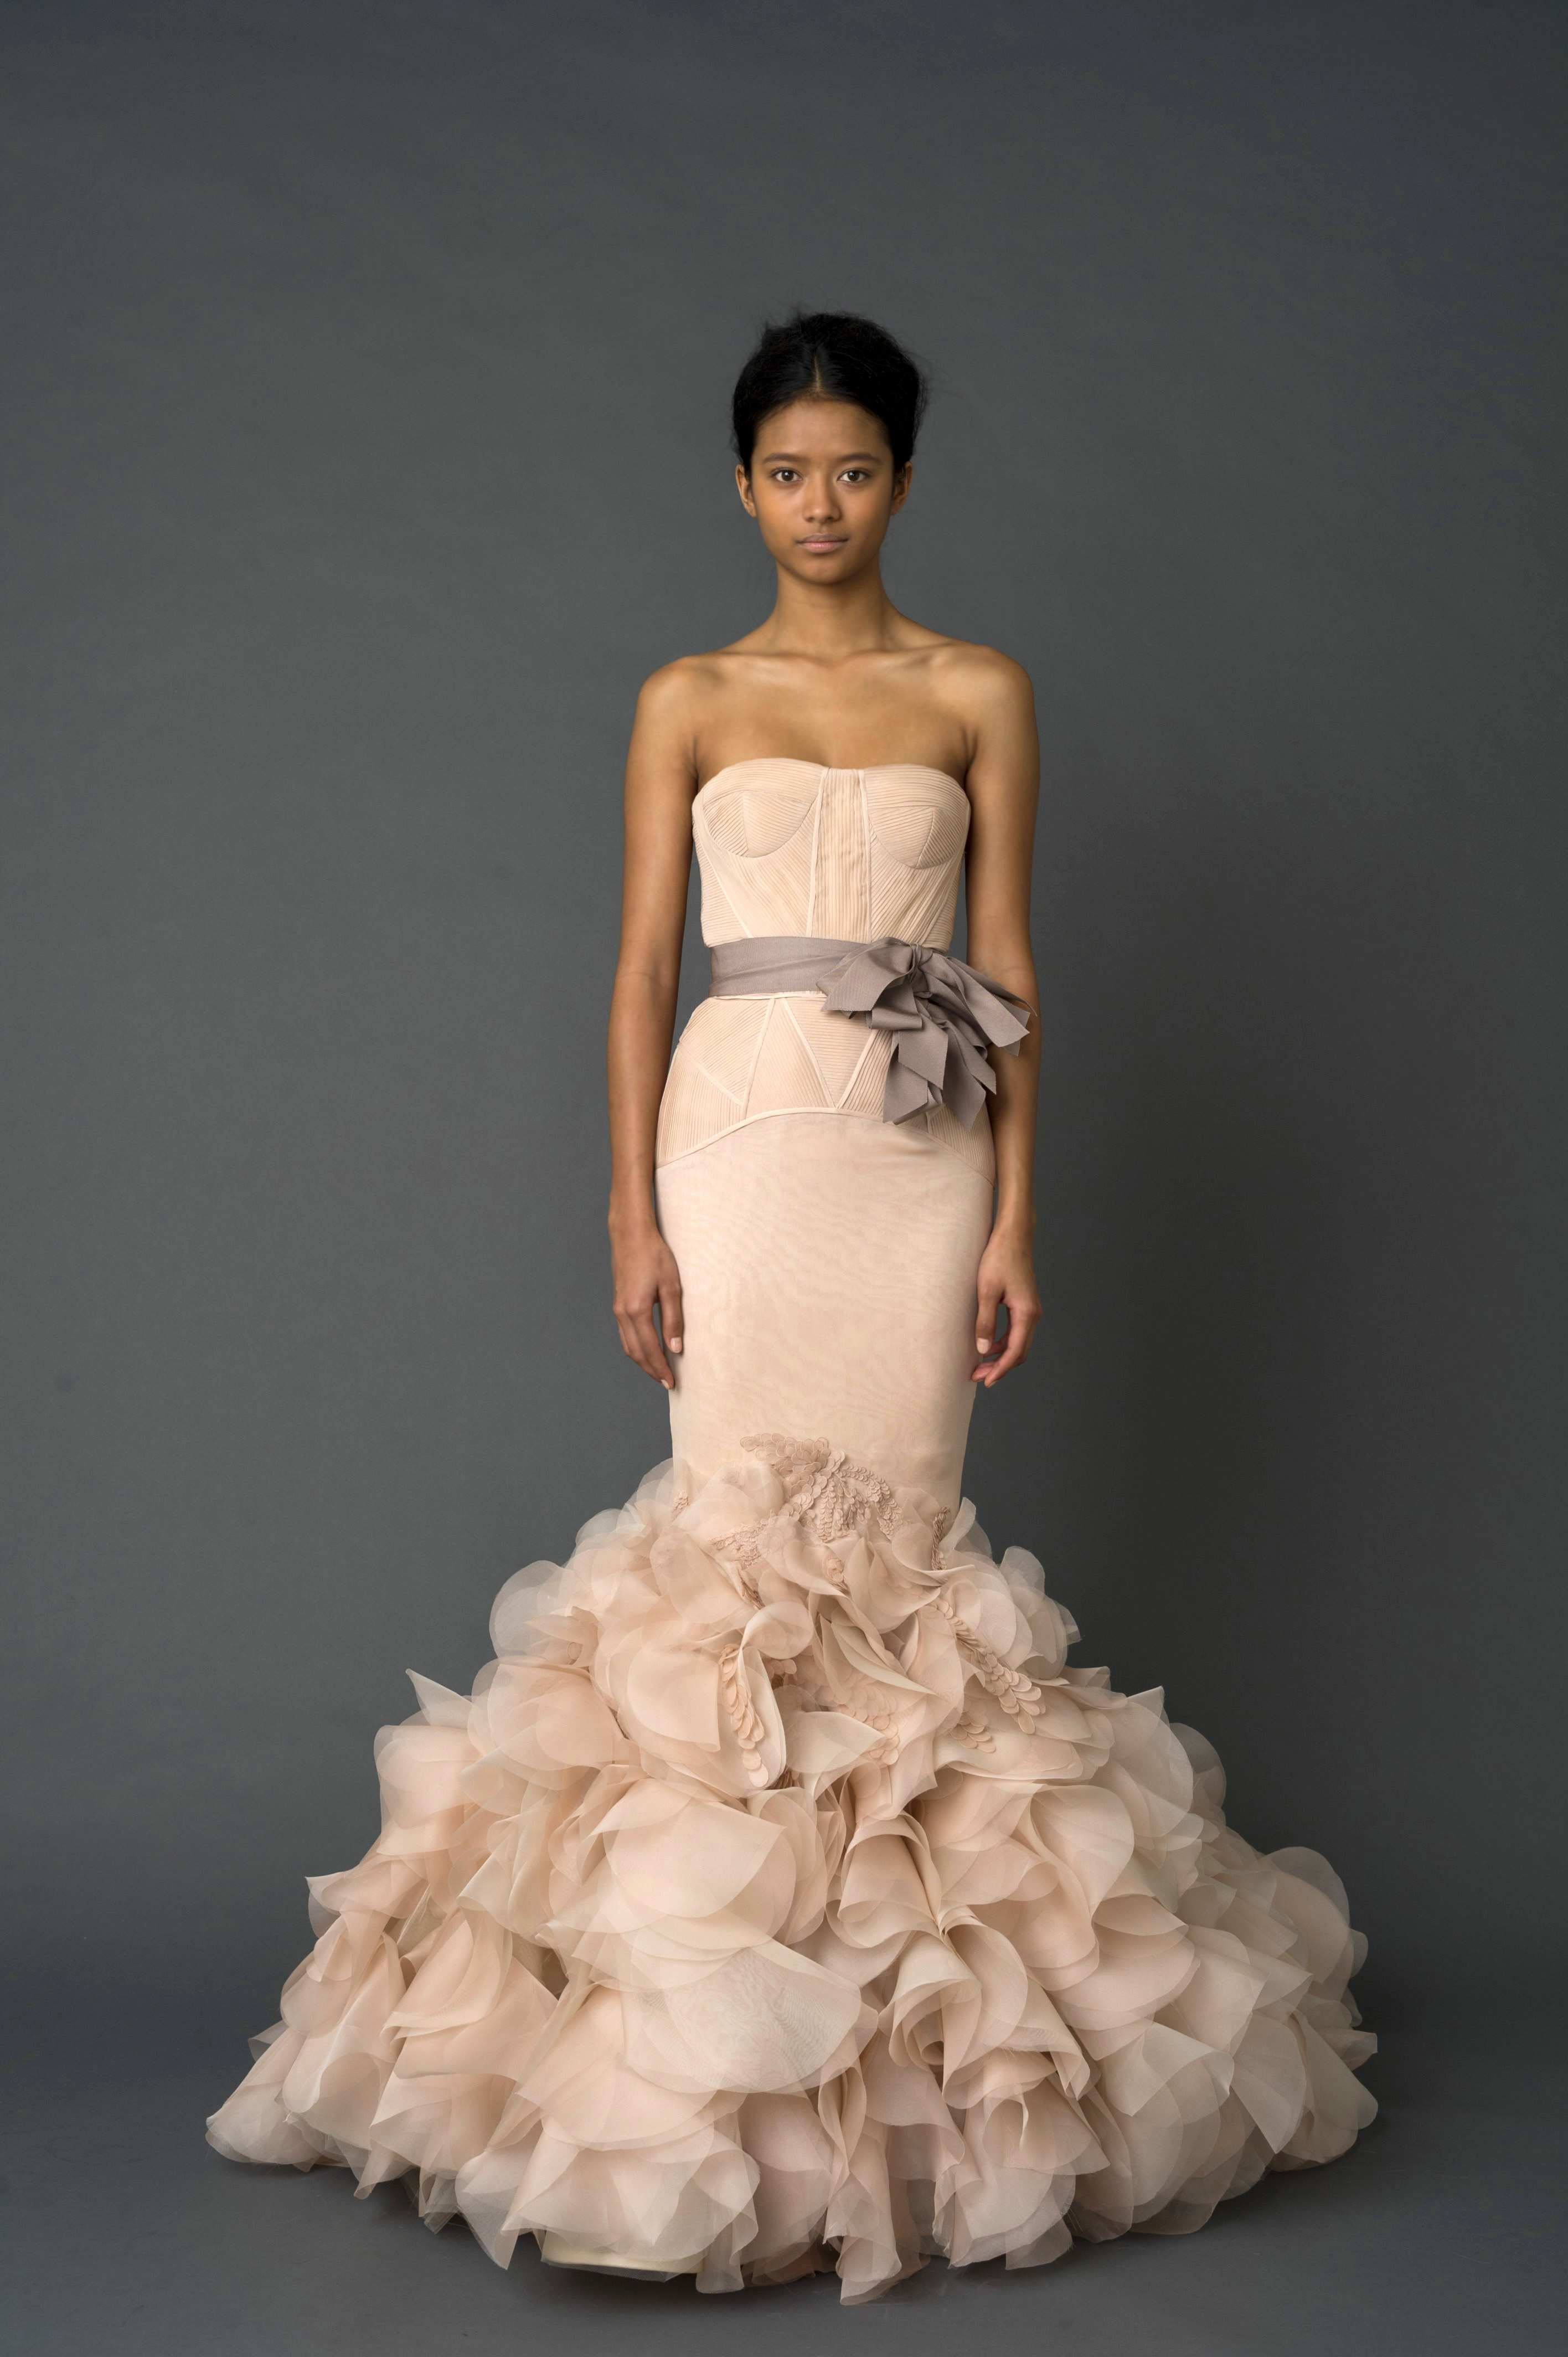 My original idea for my wedding dress. Too bad all the volume on the bottom costs more! So pretty.